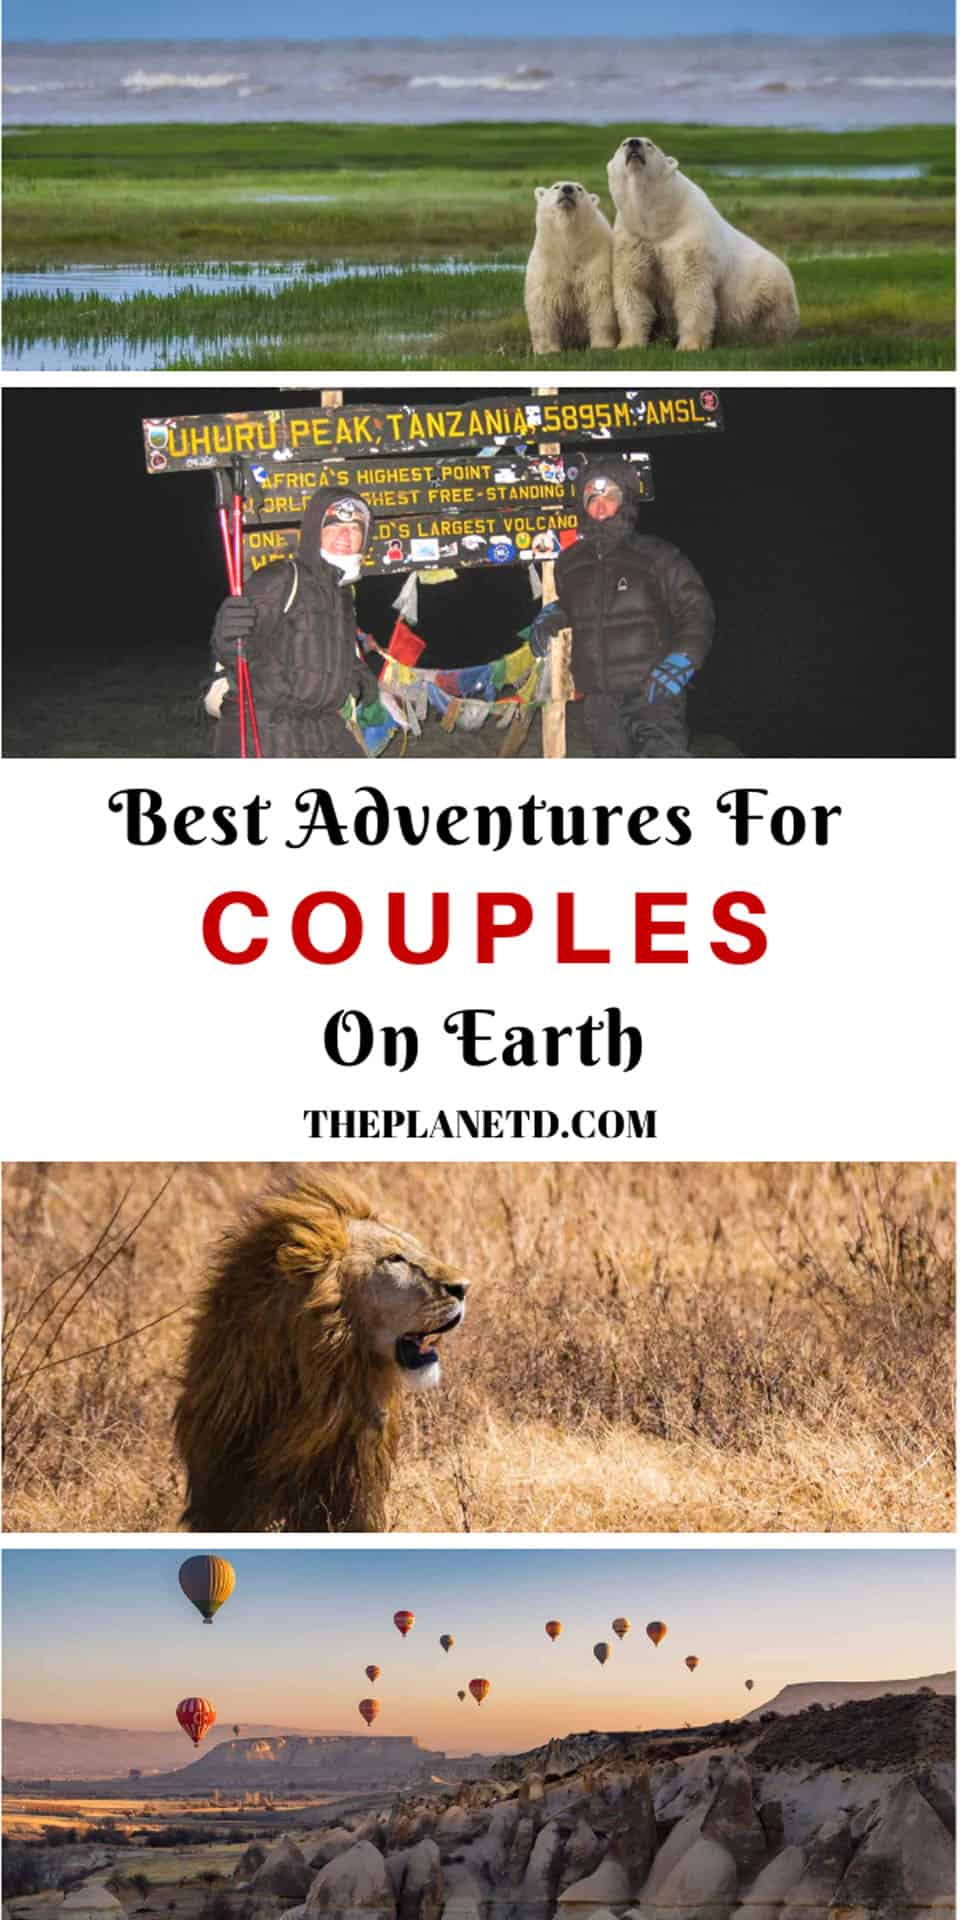 Best adventures for couples